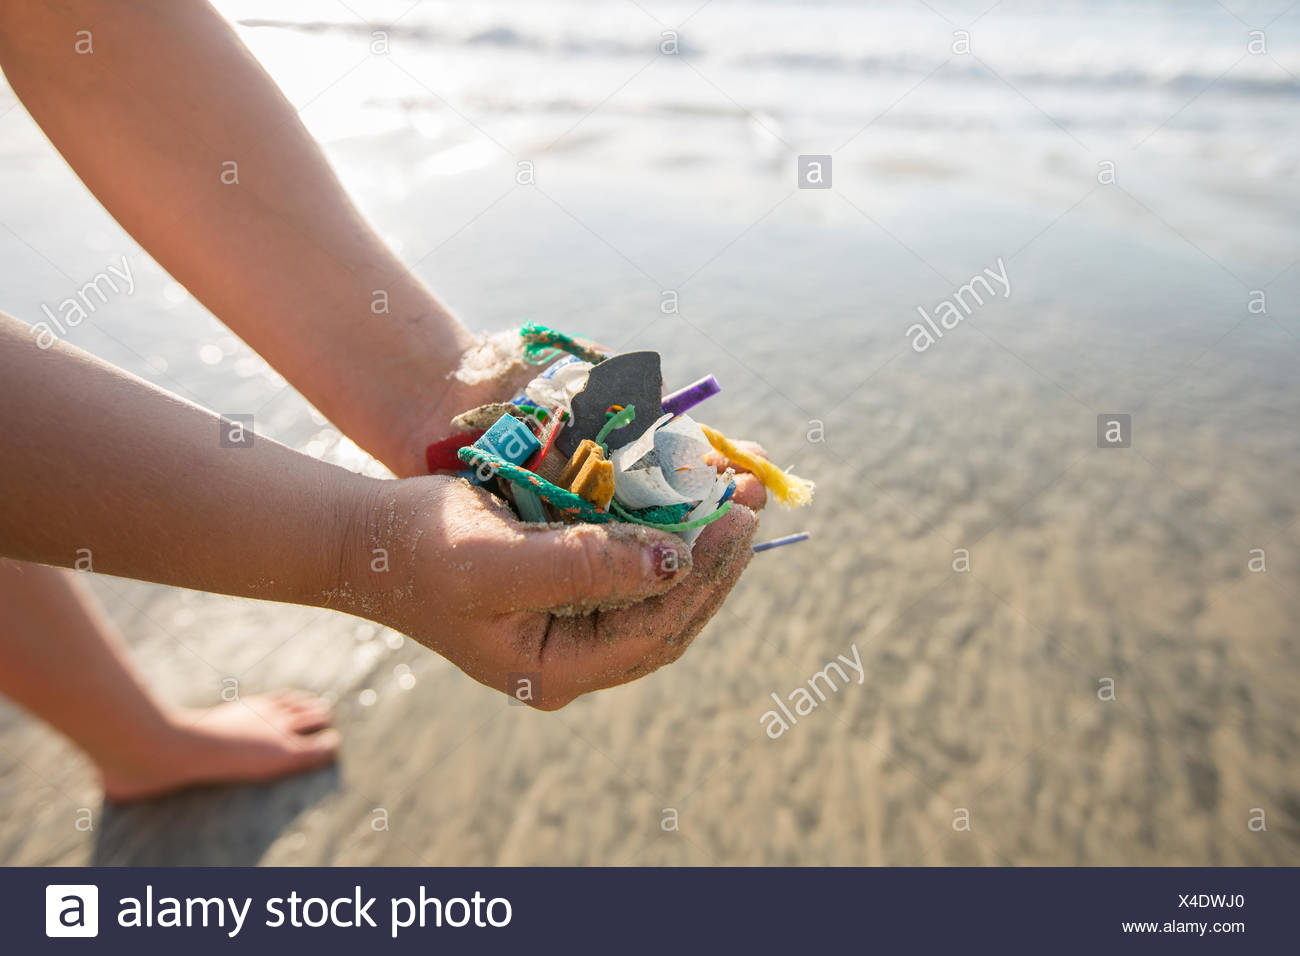 Close up of hands of girl holding plastic trash picked up at Torrey Pines State Beach in San Diego,California,USA - Stock Image